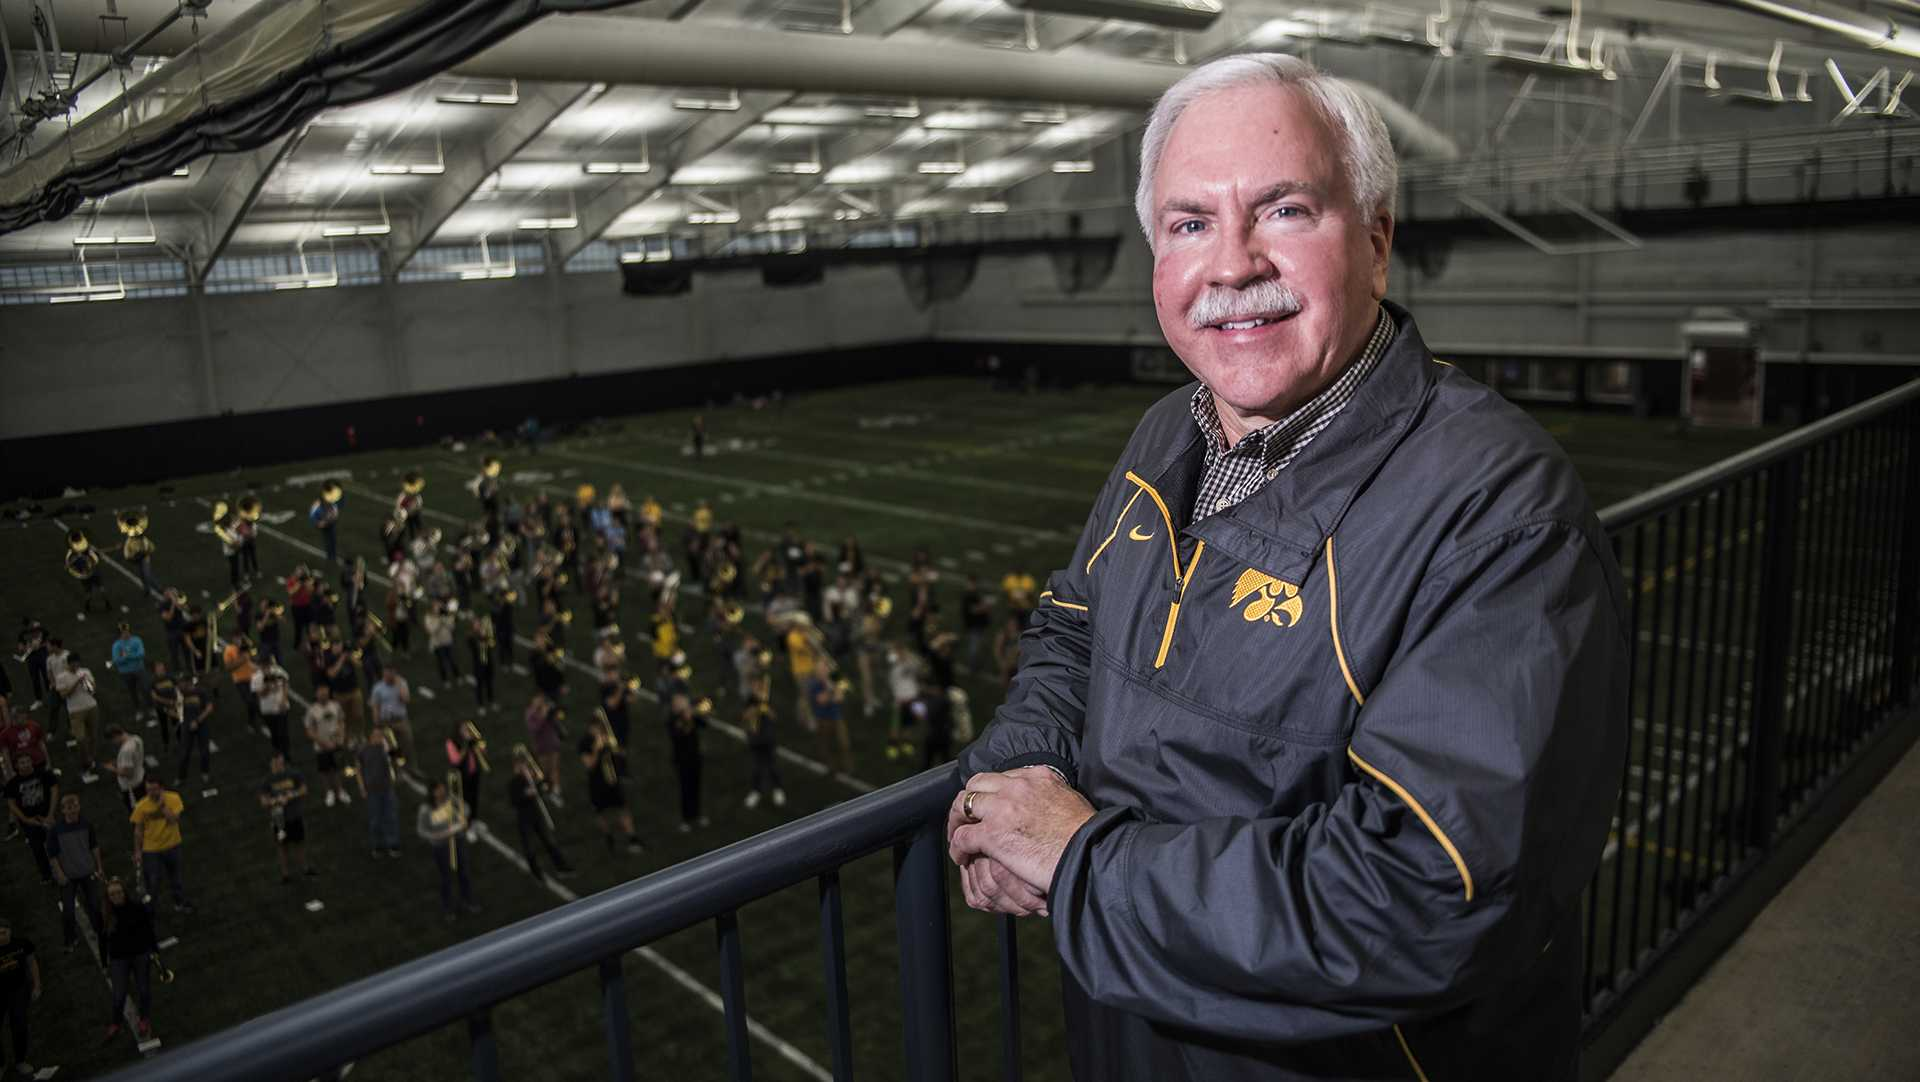 UI Marching Band Director Kevin Kastens poses for a portraits during practice at the Hawkeye Tennis and Recreation Center on Thursday, Nov. 16. Kastens is retiring this year after 20 years in multiple directorial positions at the University. (Ben Smith/The Daily Iowan)